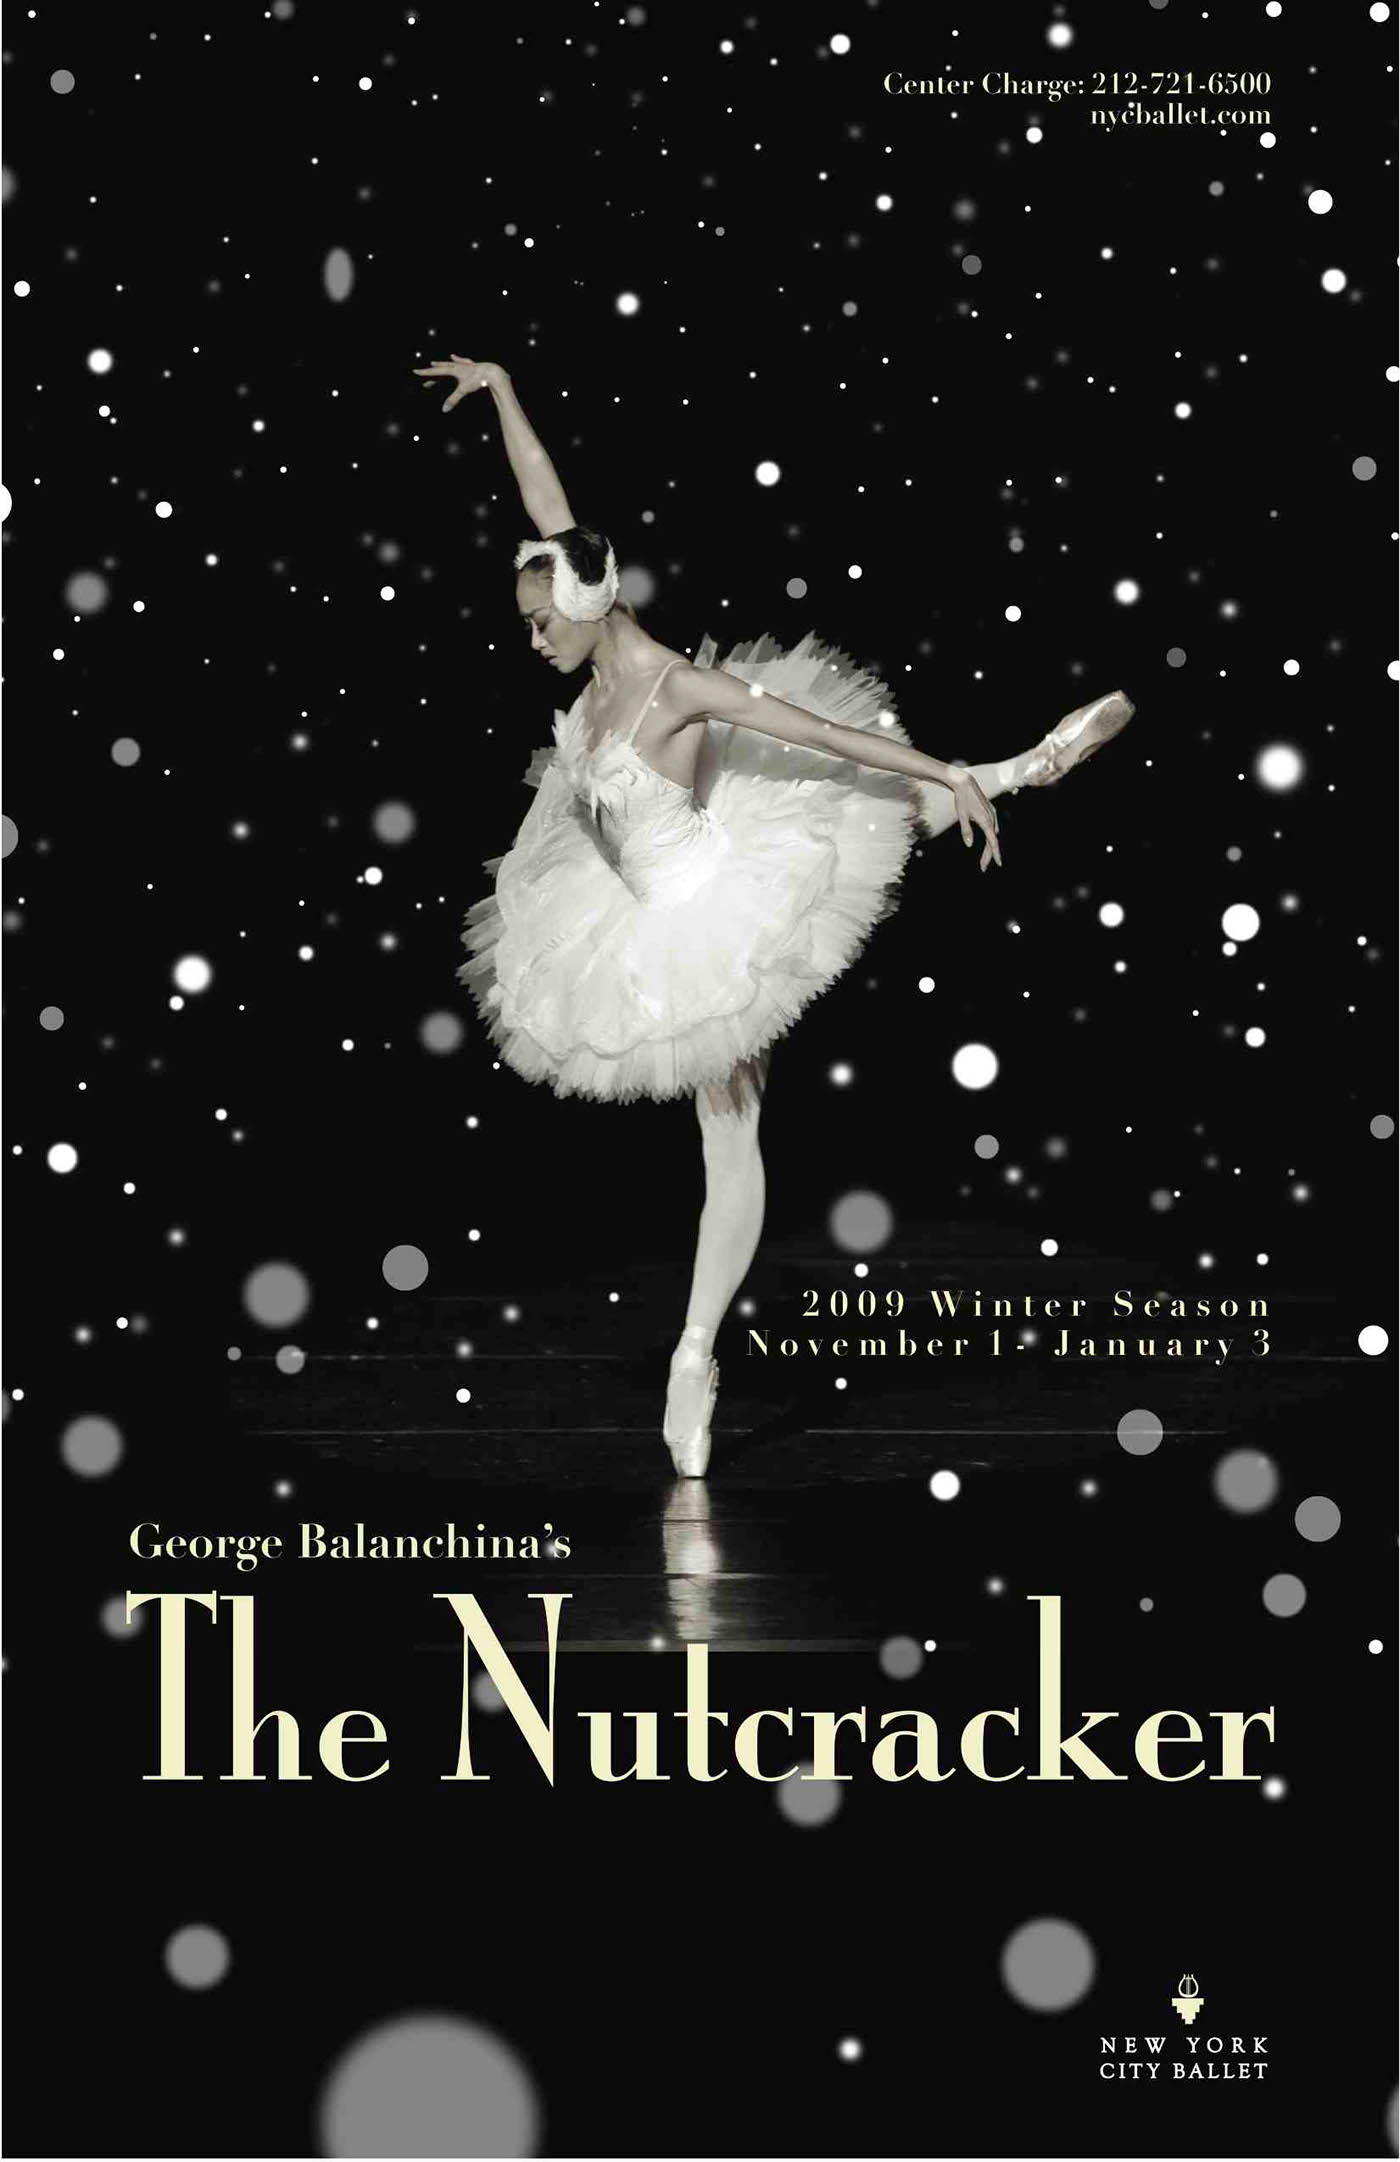 The Nutcracker Ballet on Behance